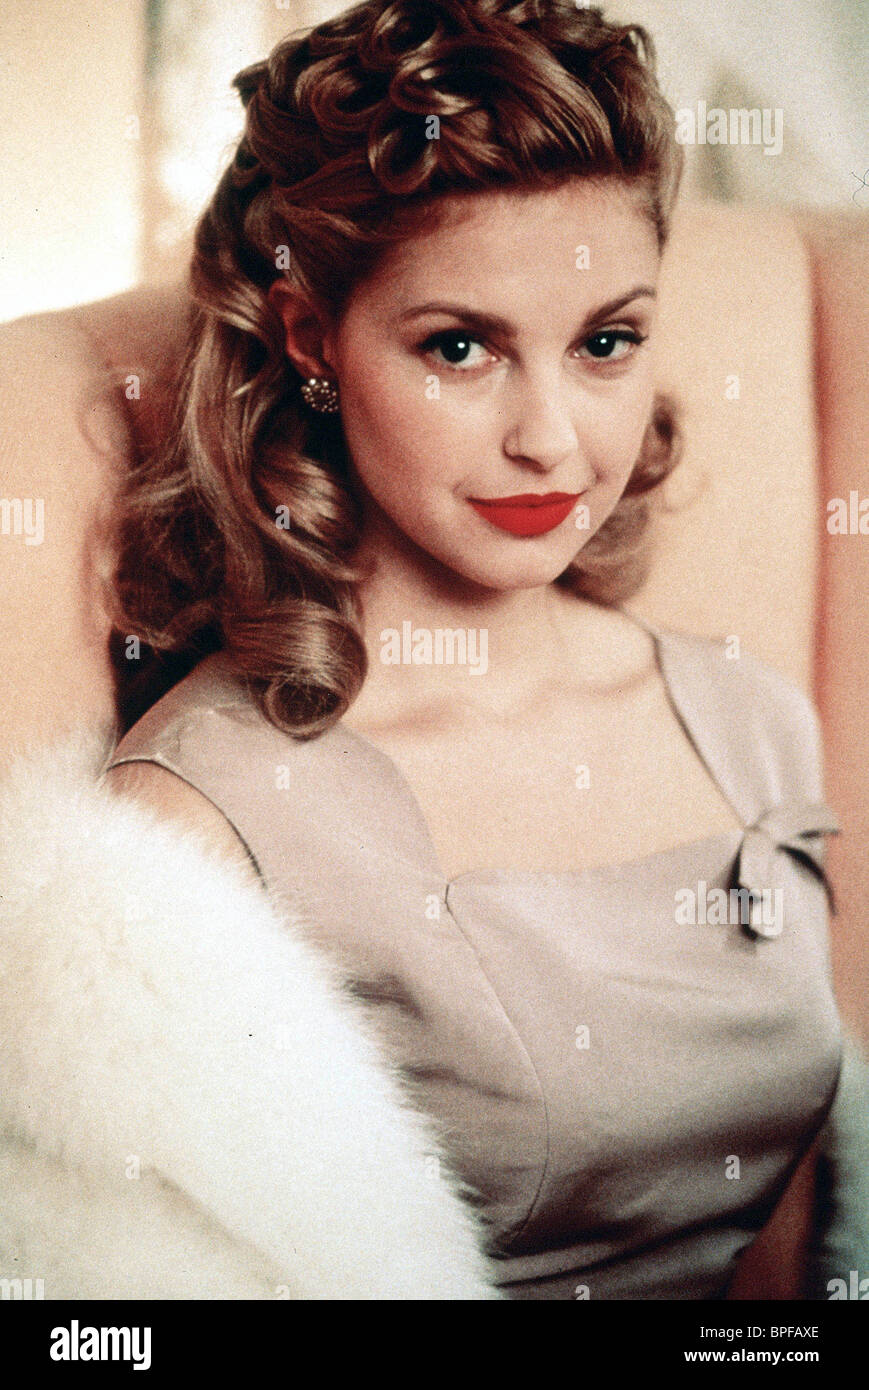 Ashley judd norma jean and marilyn photoshoot